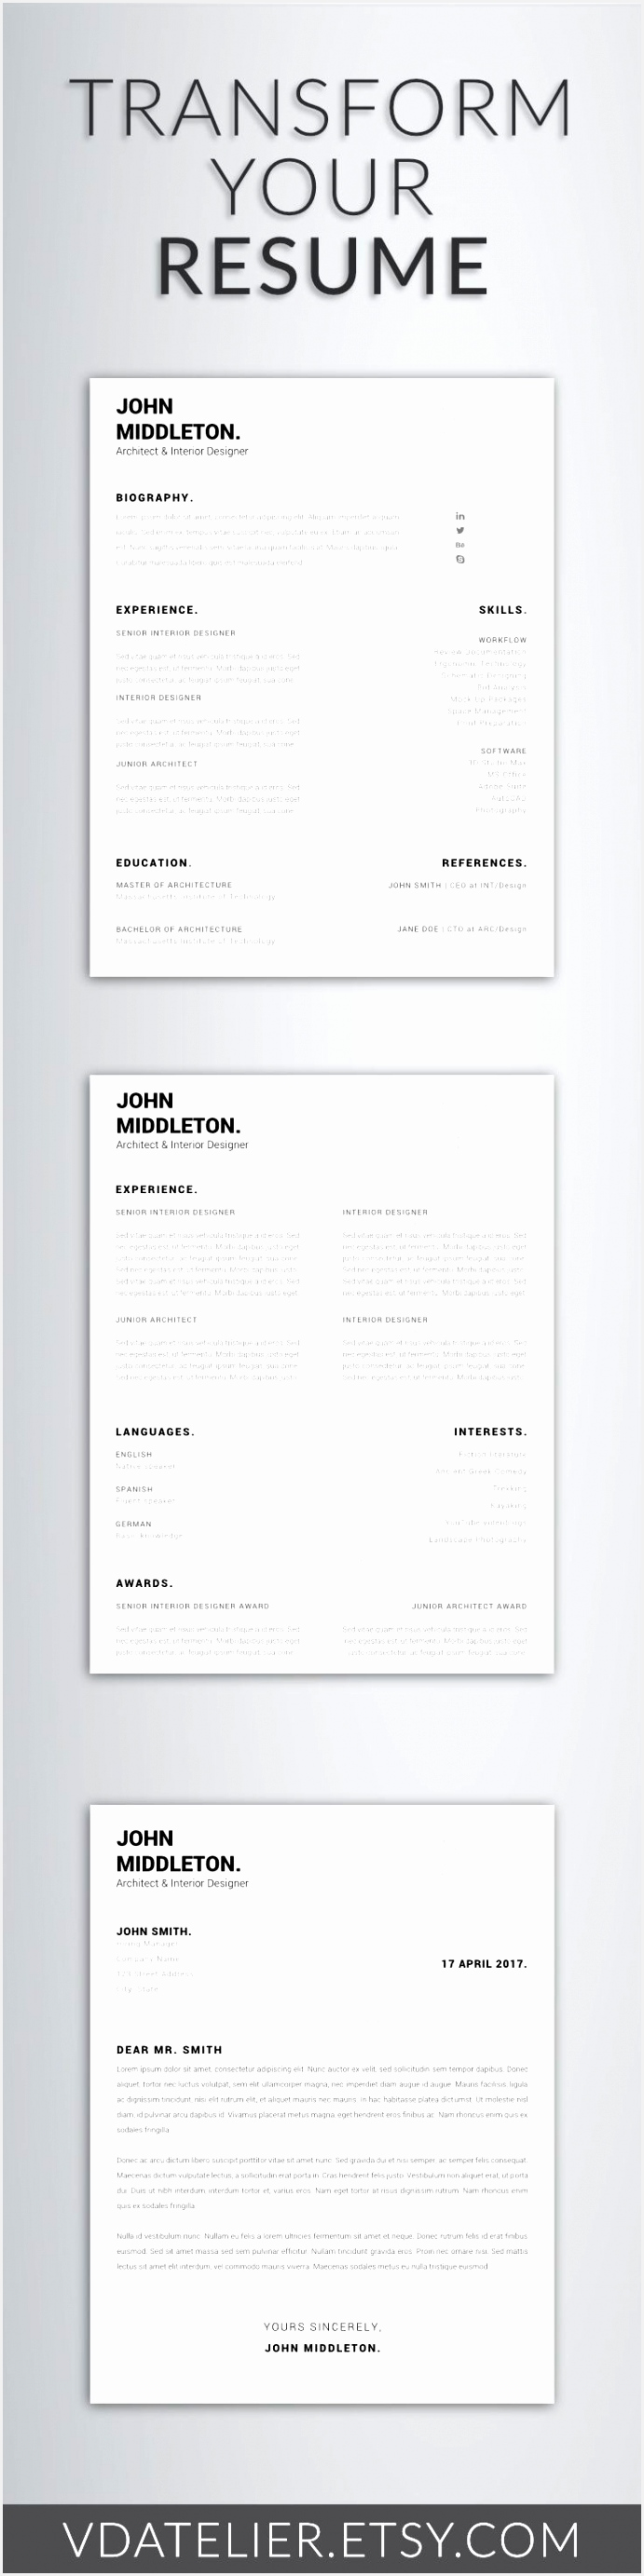 Head Teacher Resume Ucq3n Inspirational Modern Resume Template New Resume Template Cv Template Cover Letter Of Head Teacher Resume Fhoai Awesome 30 Cover Letter for A Teaching Position format